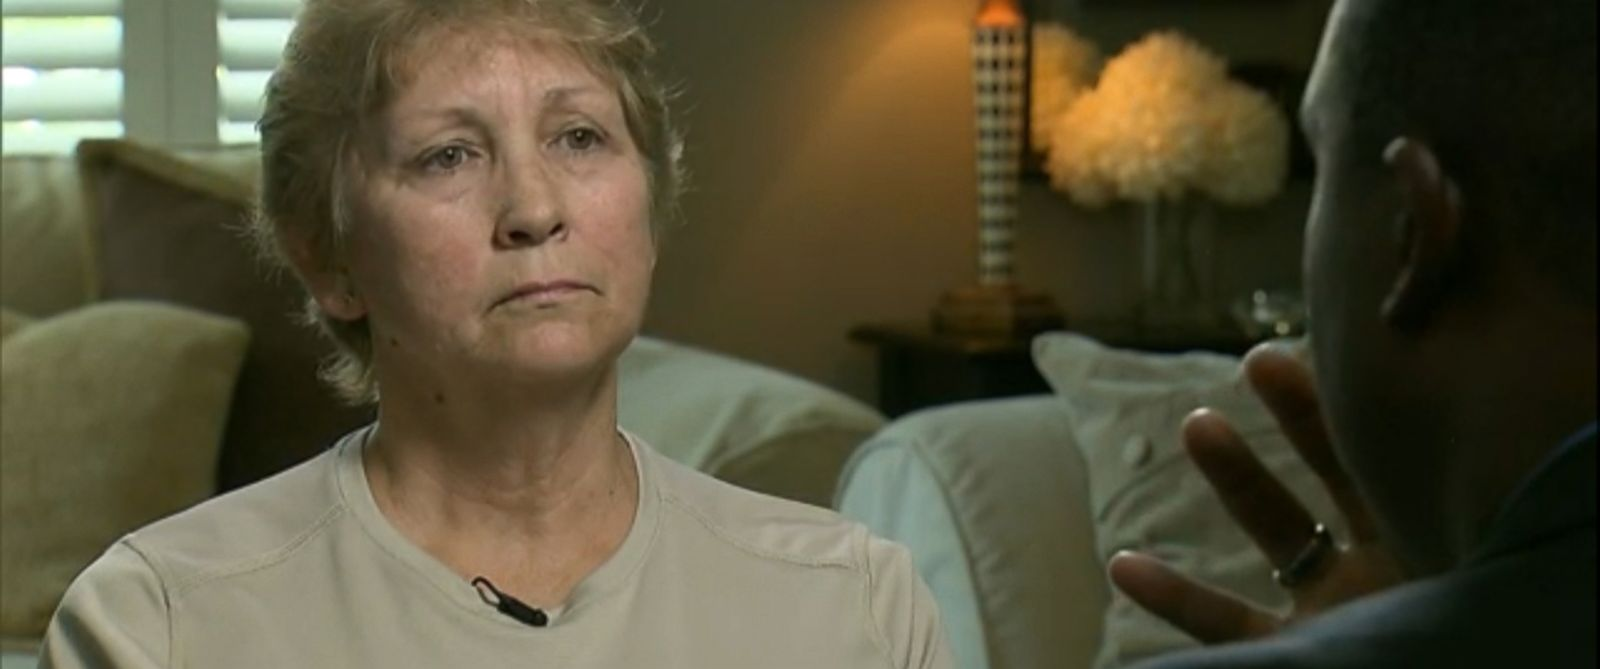 south carolina police officer s mom speaks out in tearful photo karen sharpe the mother of former north charleston police officer michael slager